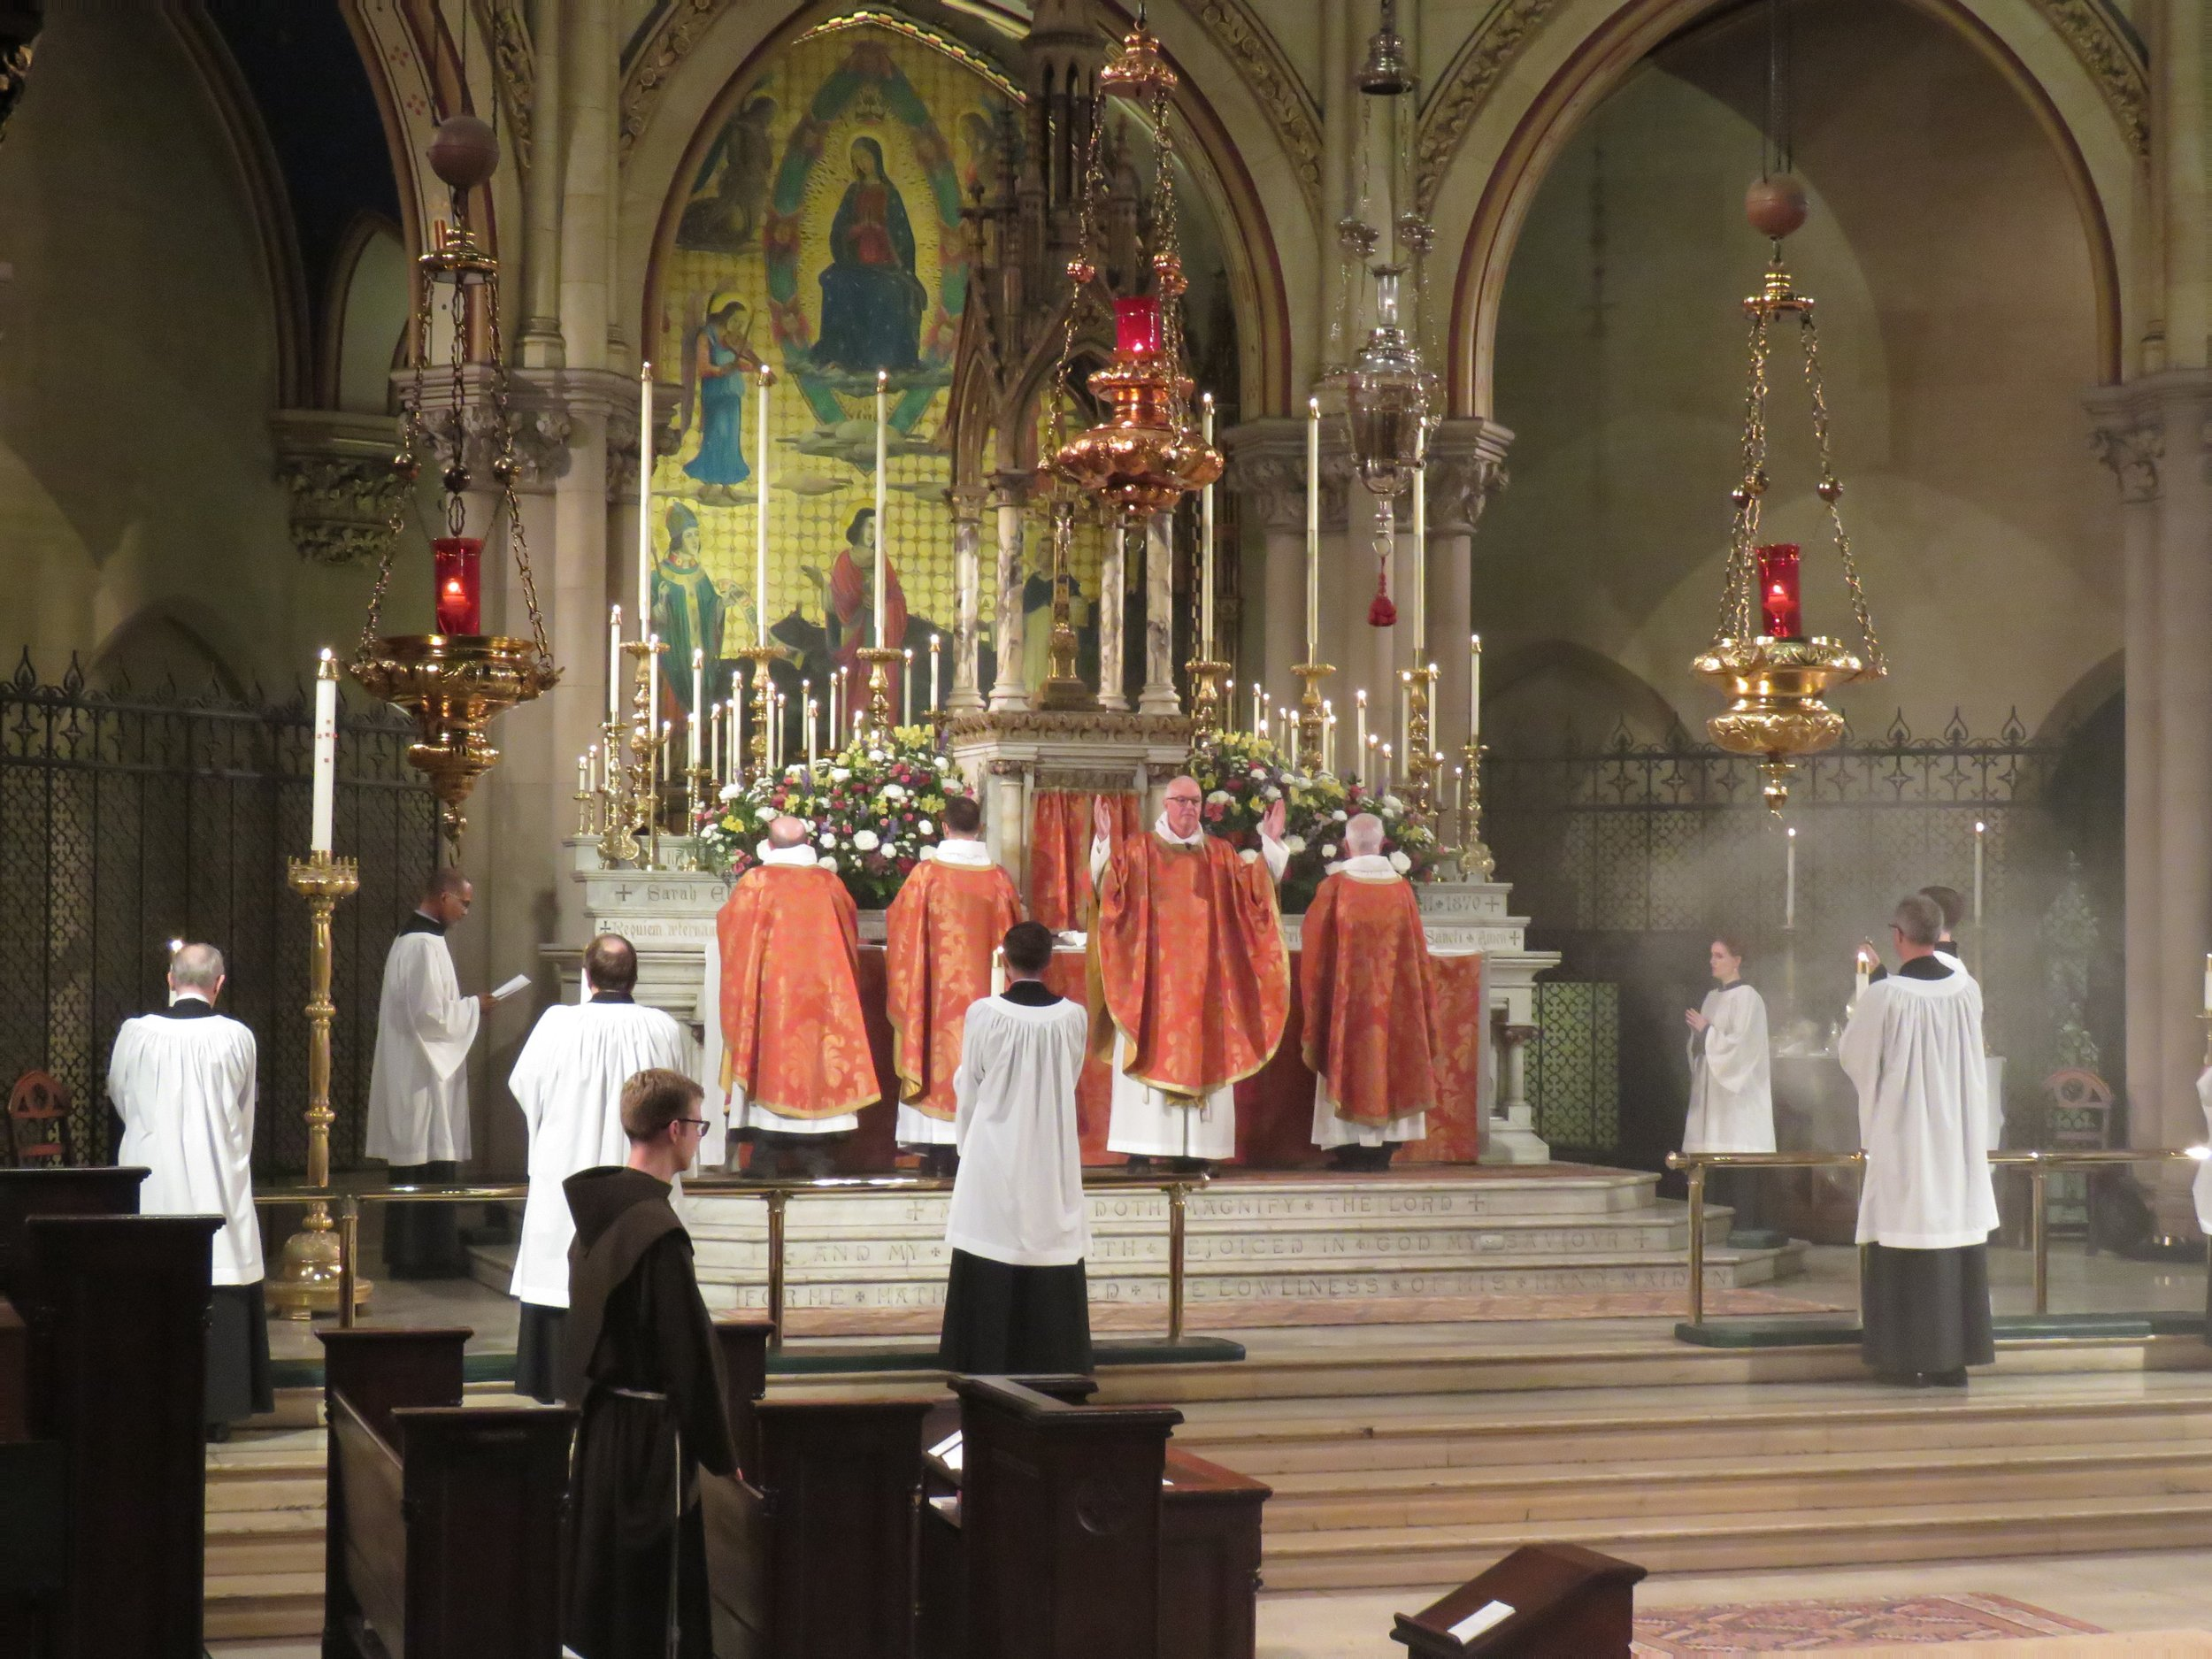 The Great Thanksgiving begins, Solemn Mass, Ascension Day, May 30, 2019. Forty candles were on the high altar for the Solemn Mass.  Photo: Damien Joseph SSF